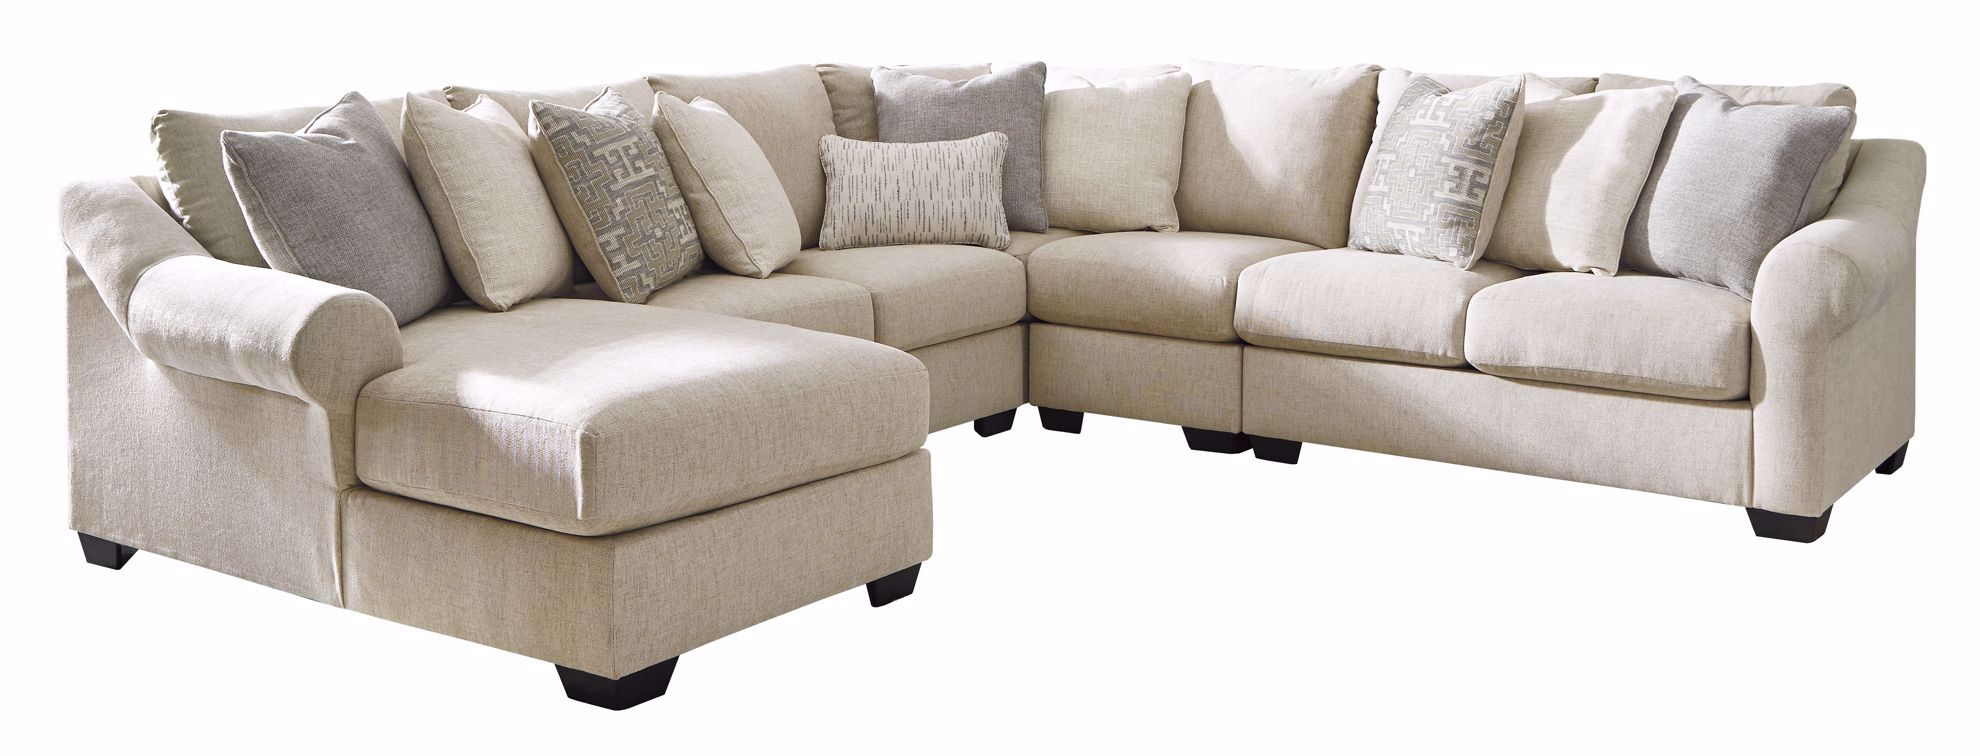 Picture of Carnaby Linen 4-Piece Sectional